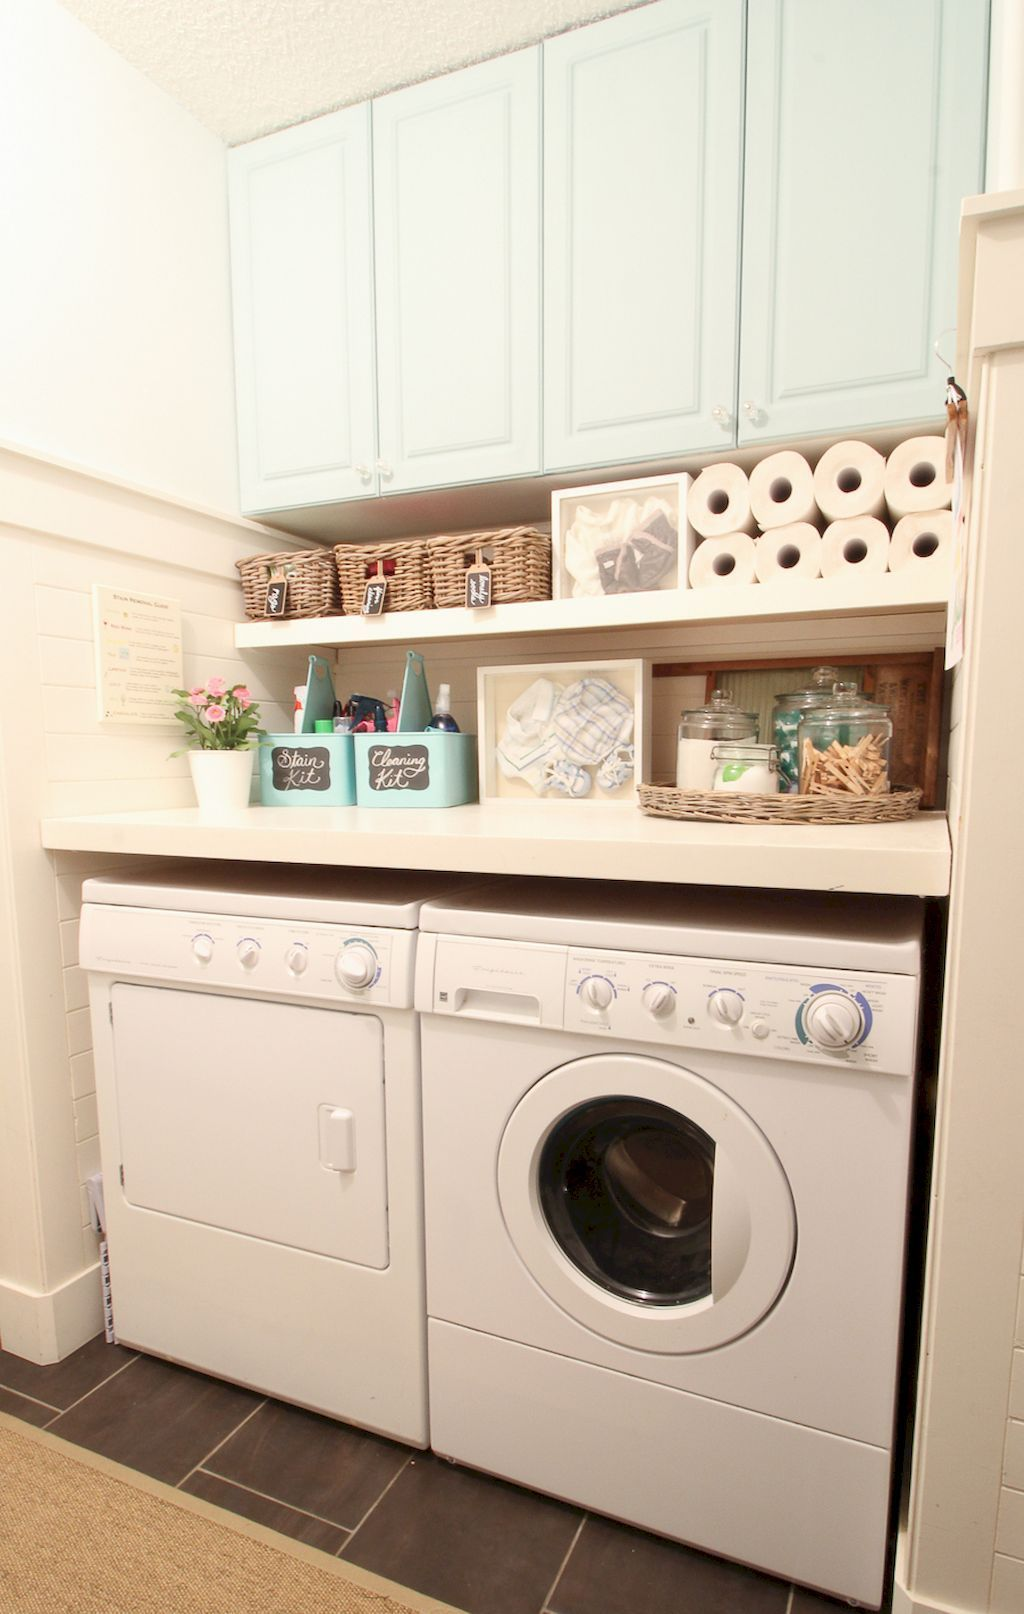 40 the beautiful laundry room ideas to inspire you on effectively laundry room decoration ideas easy ideas to inspire you id=59206